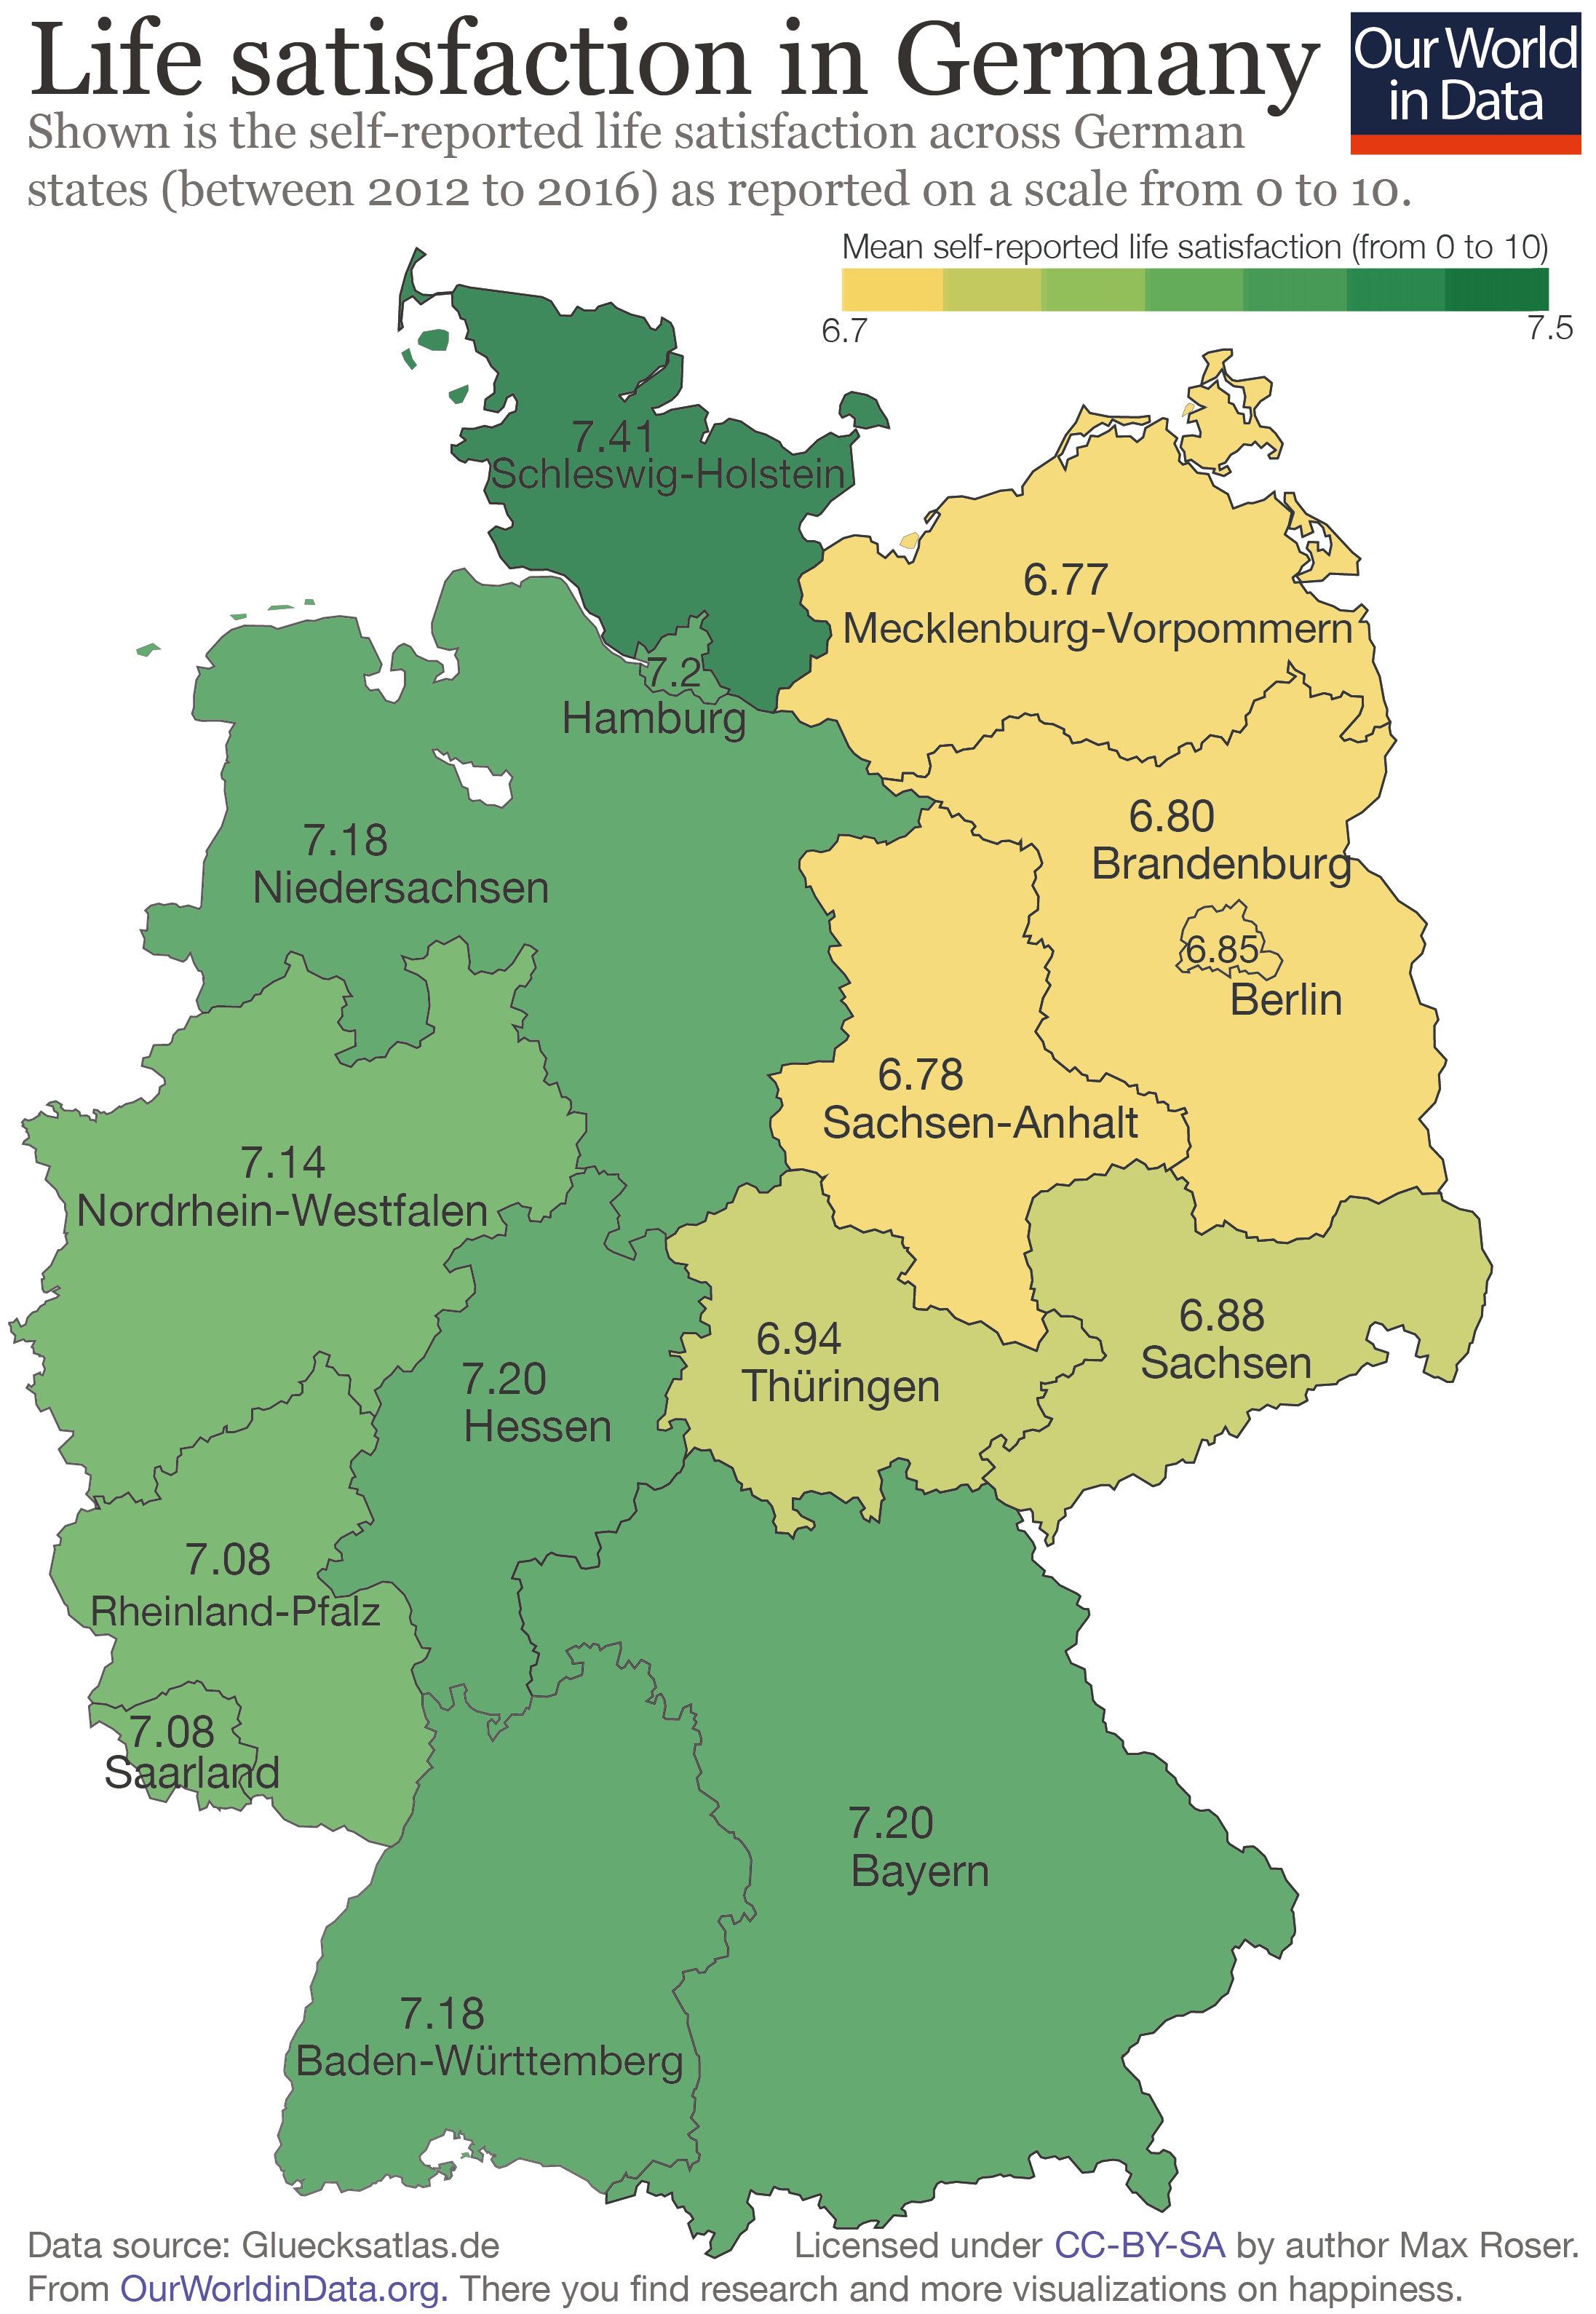 East West Germany Map There is a 'happiness gap' between East and West Germany   Our  East West Germany Map